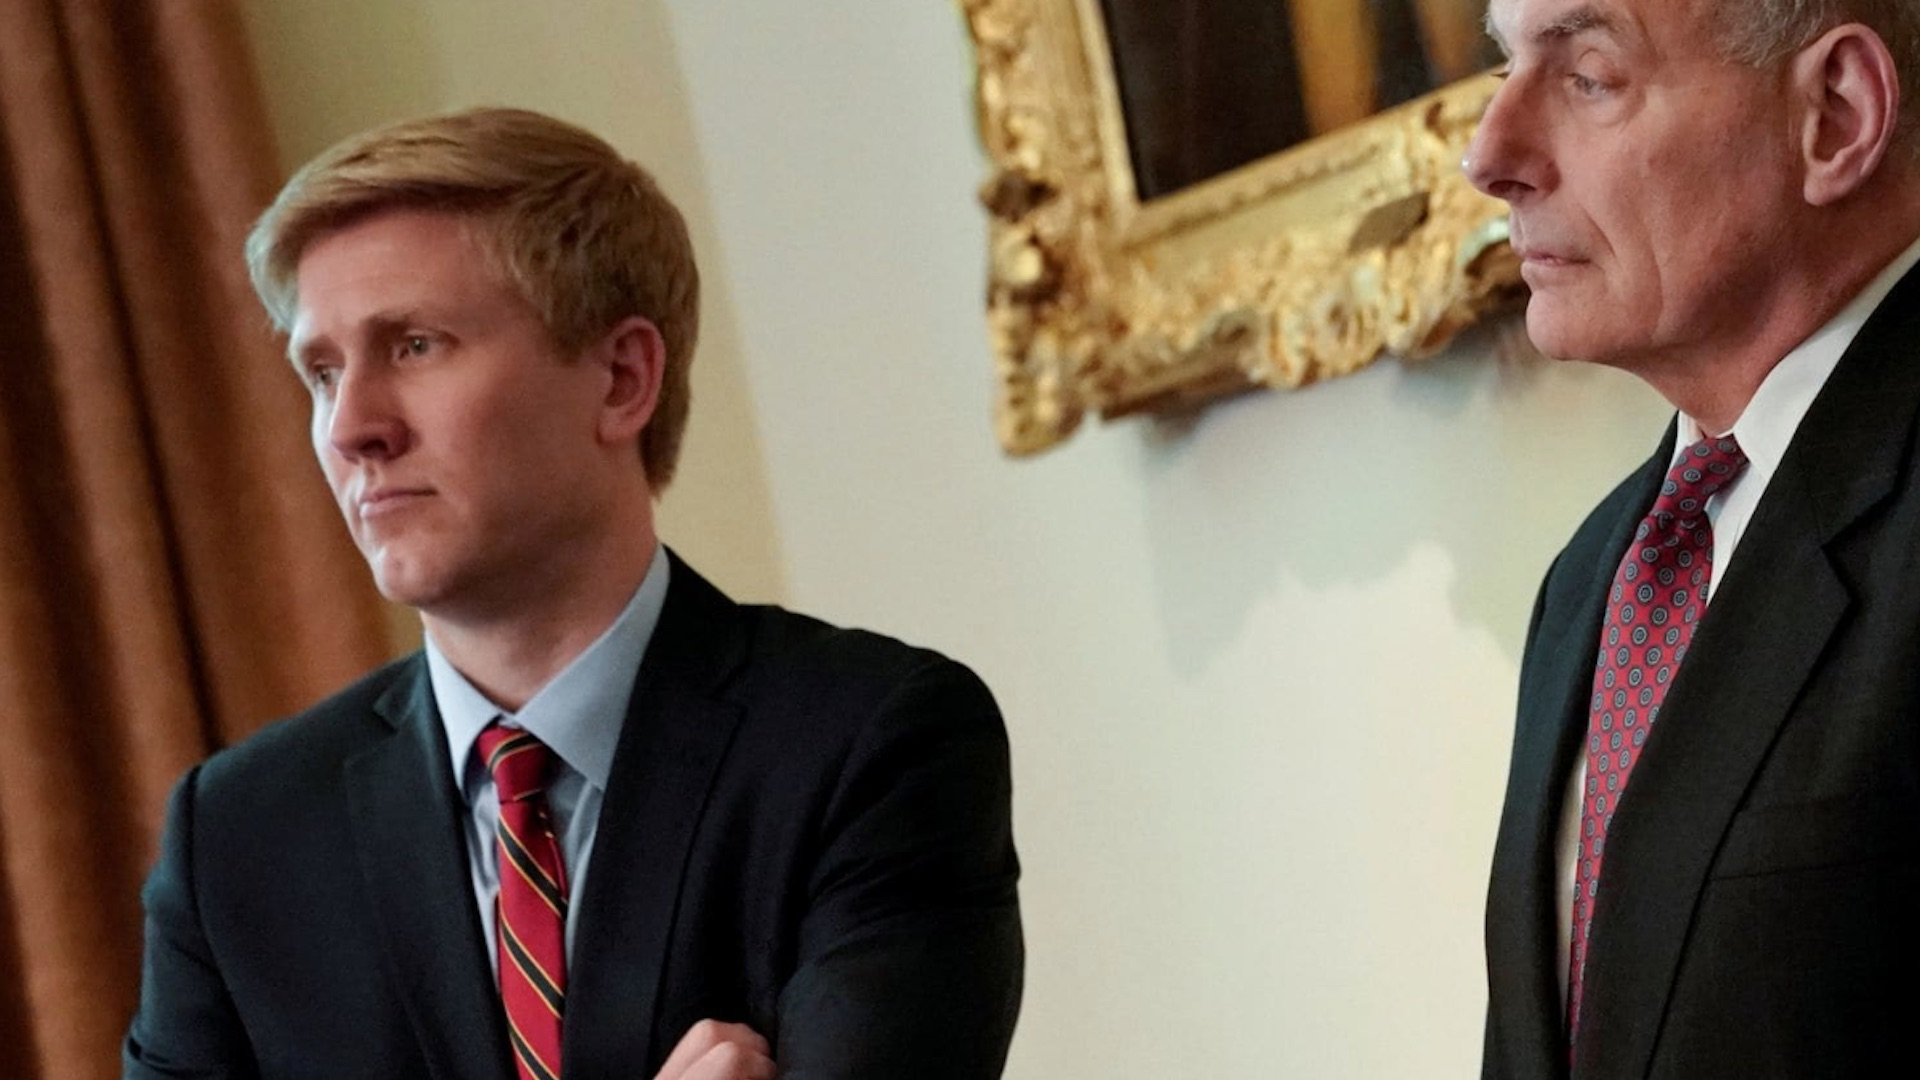 The perfect cover letter for aspiring White House chiefs of staff